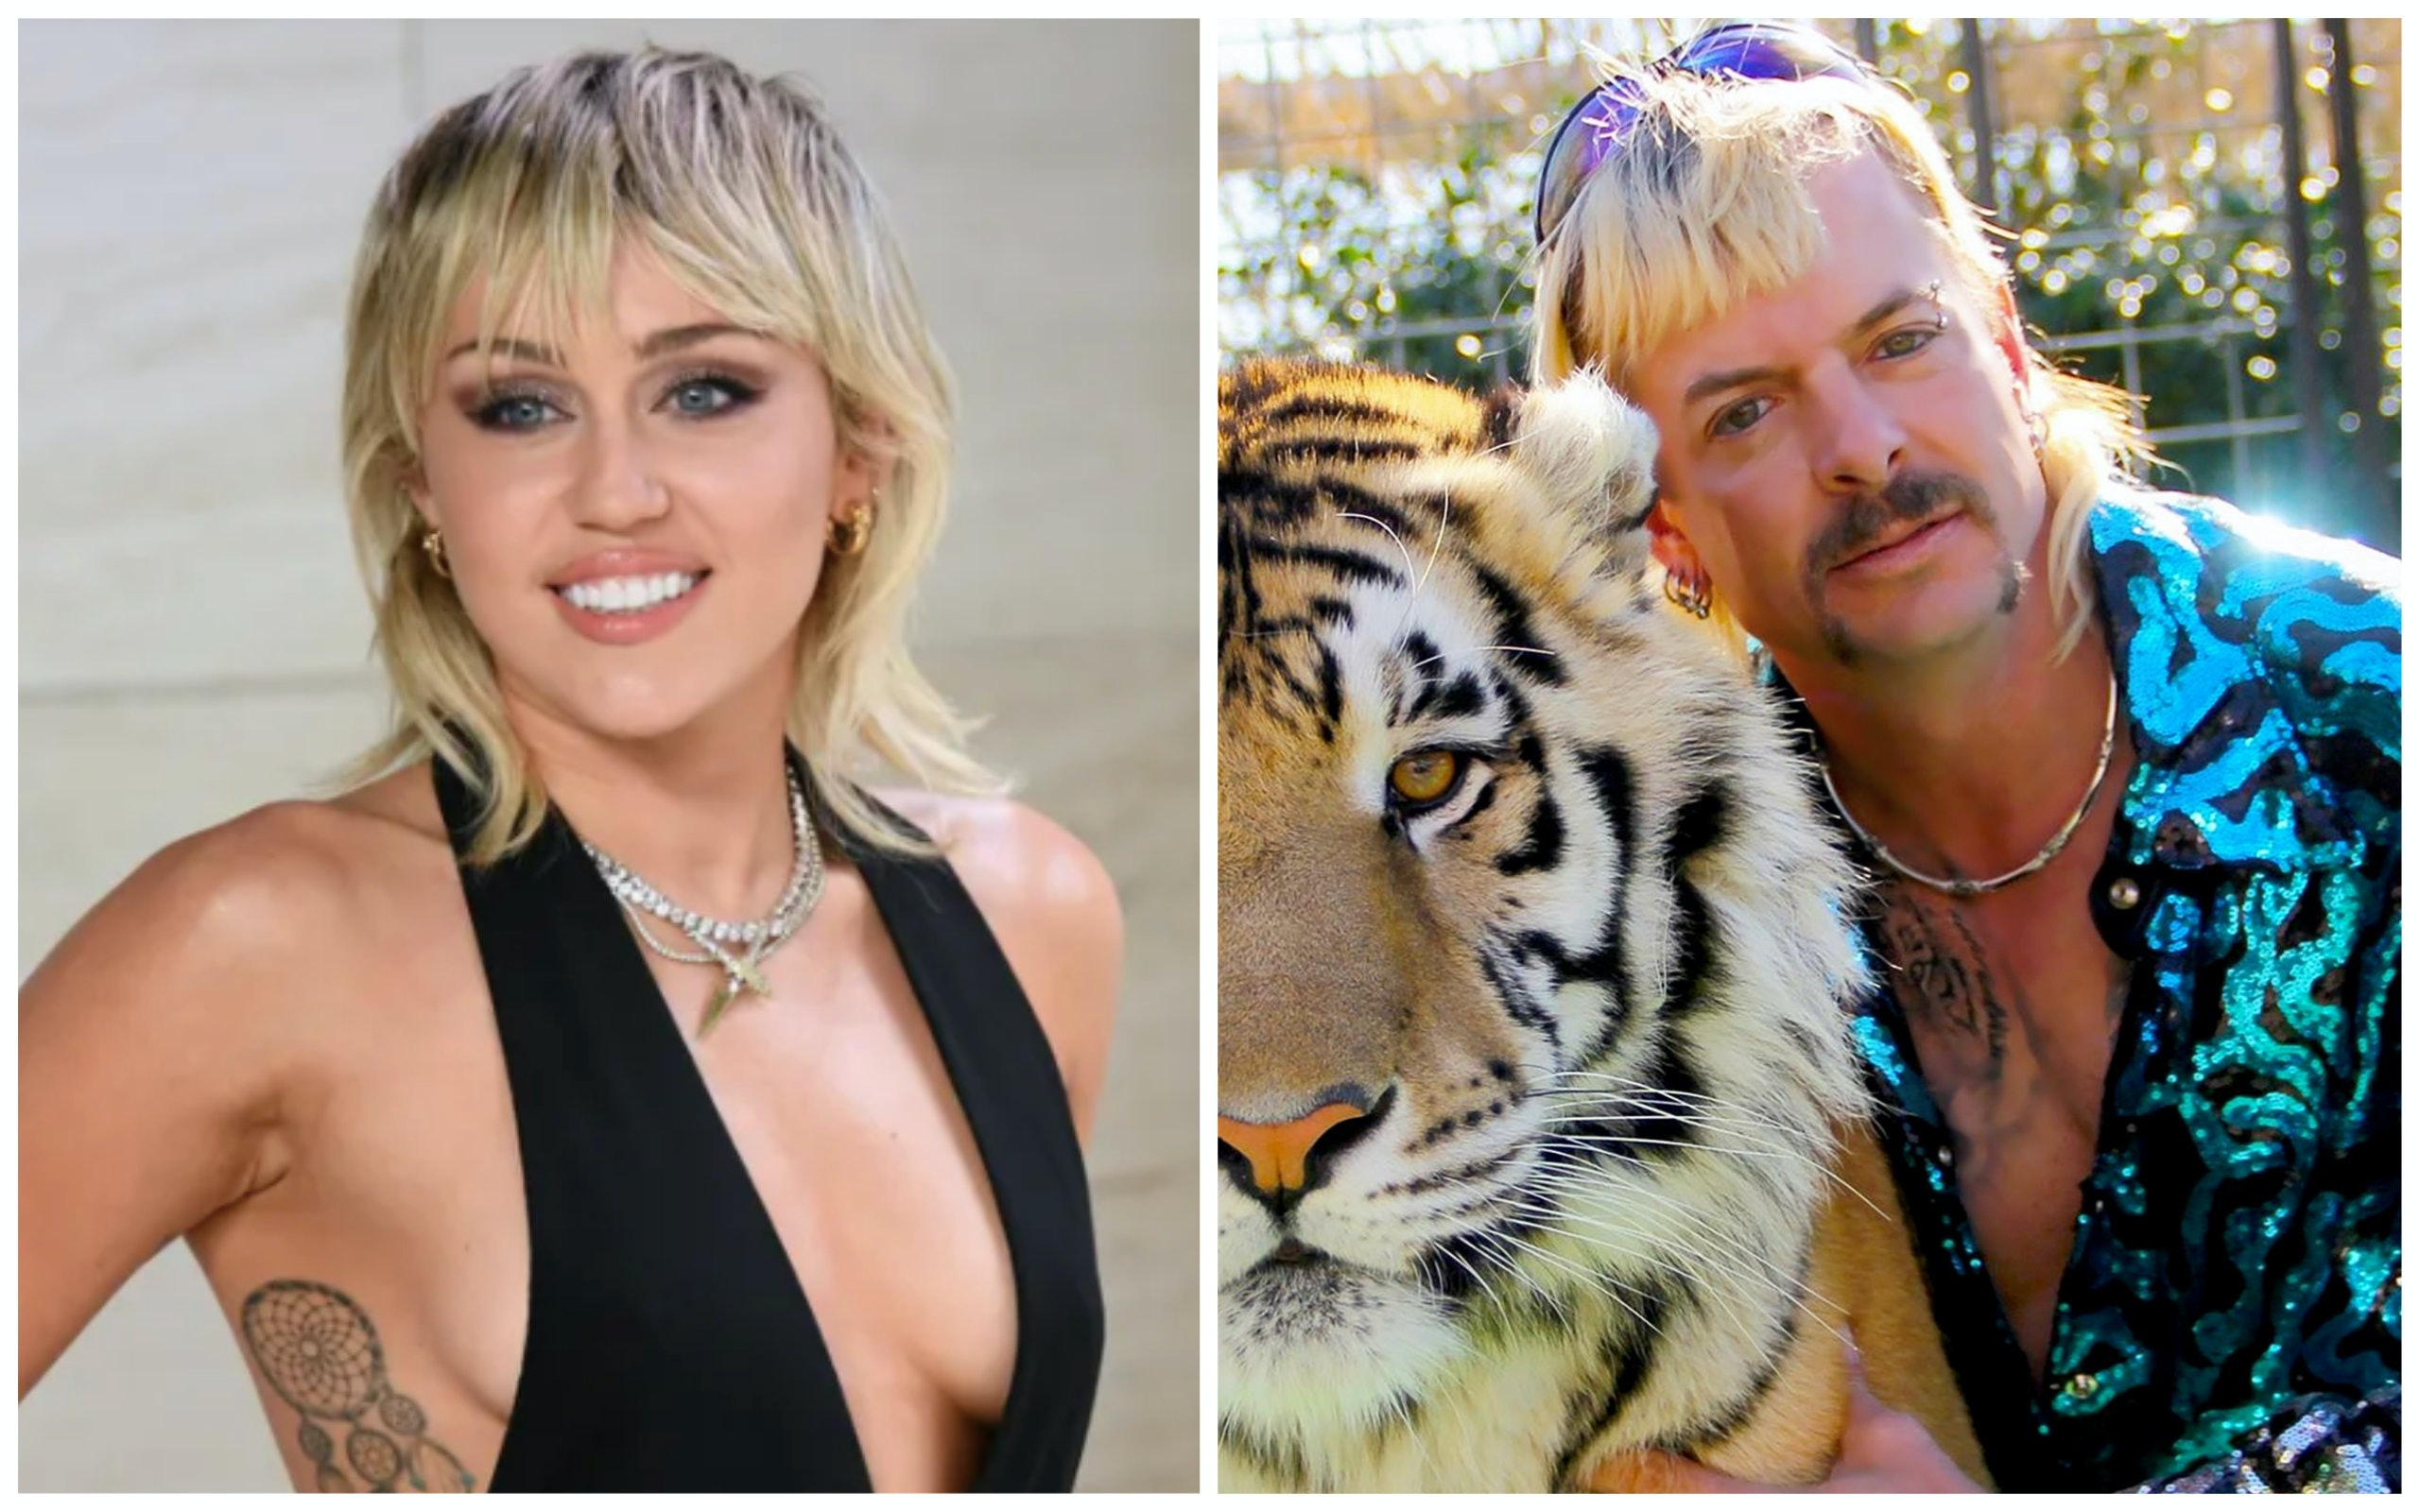 Miley Cyrus S Hair Is Drawing Comparisons To Tiger King Joe Exotic